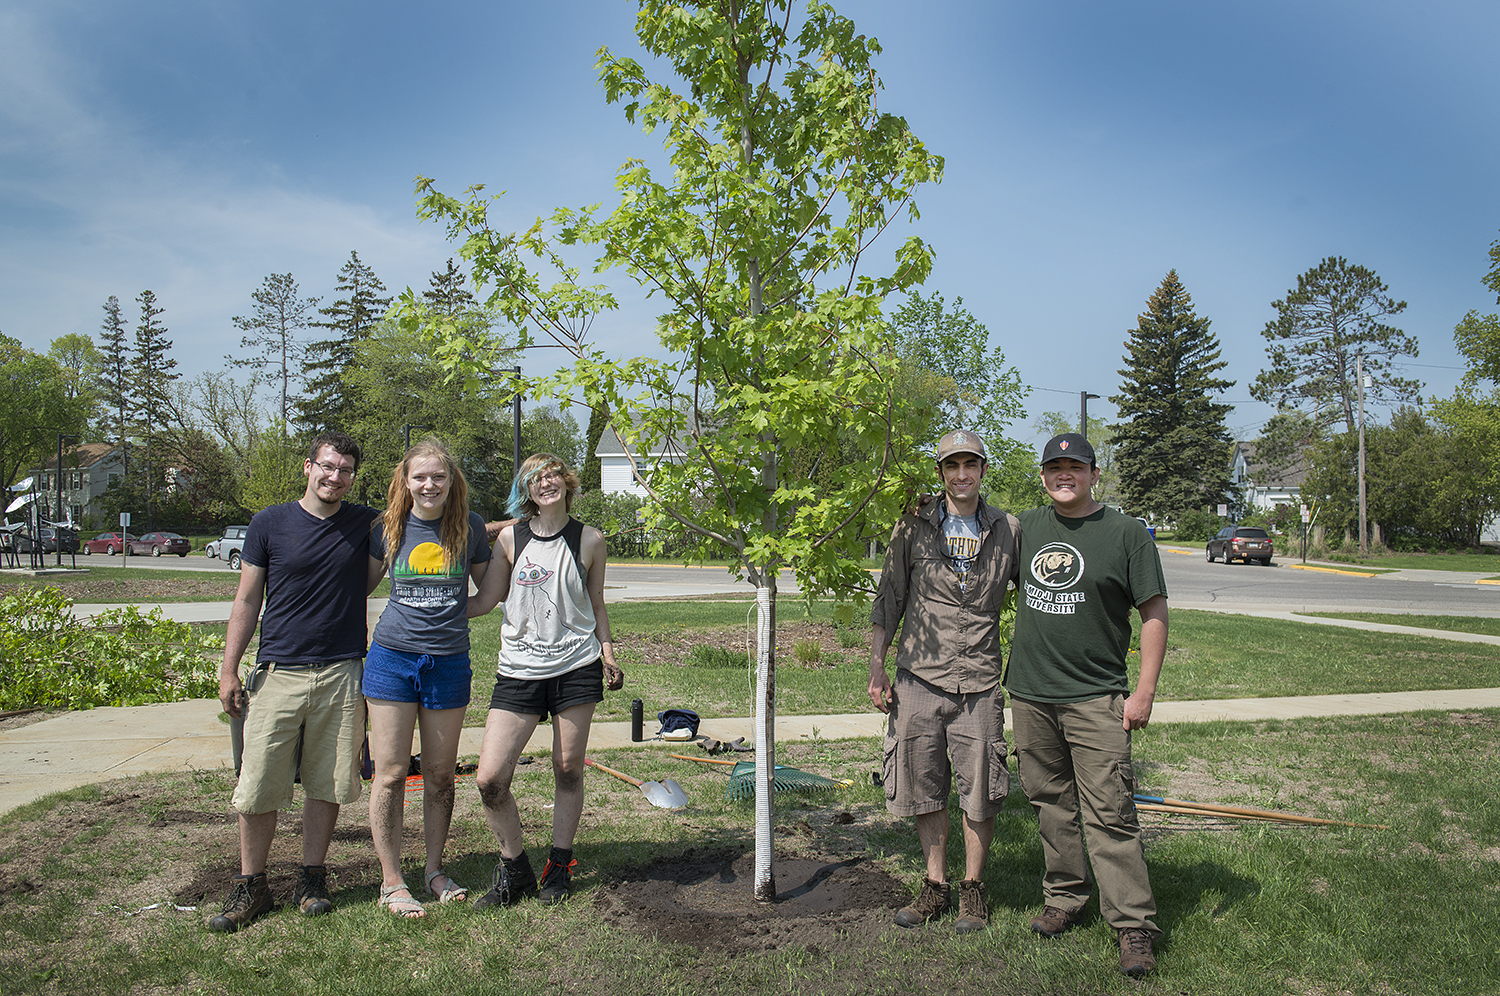 Jacob Haley, Anna Haynes, Skye Iwanski, Jordan Lutz and Benjamin Ng pictured in front of the Autumn blaze they planted.